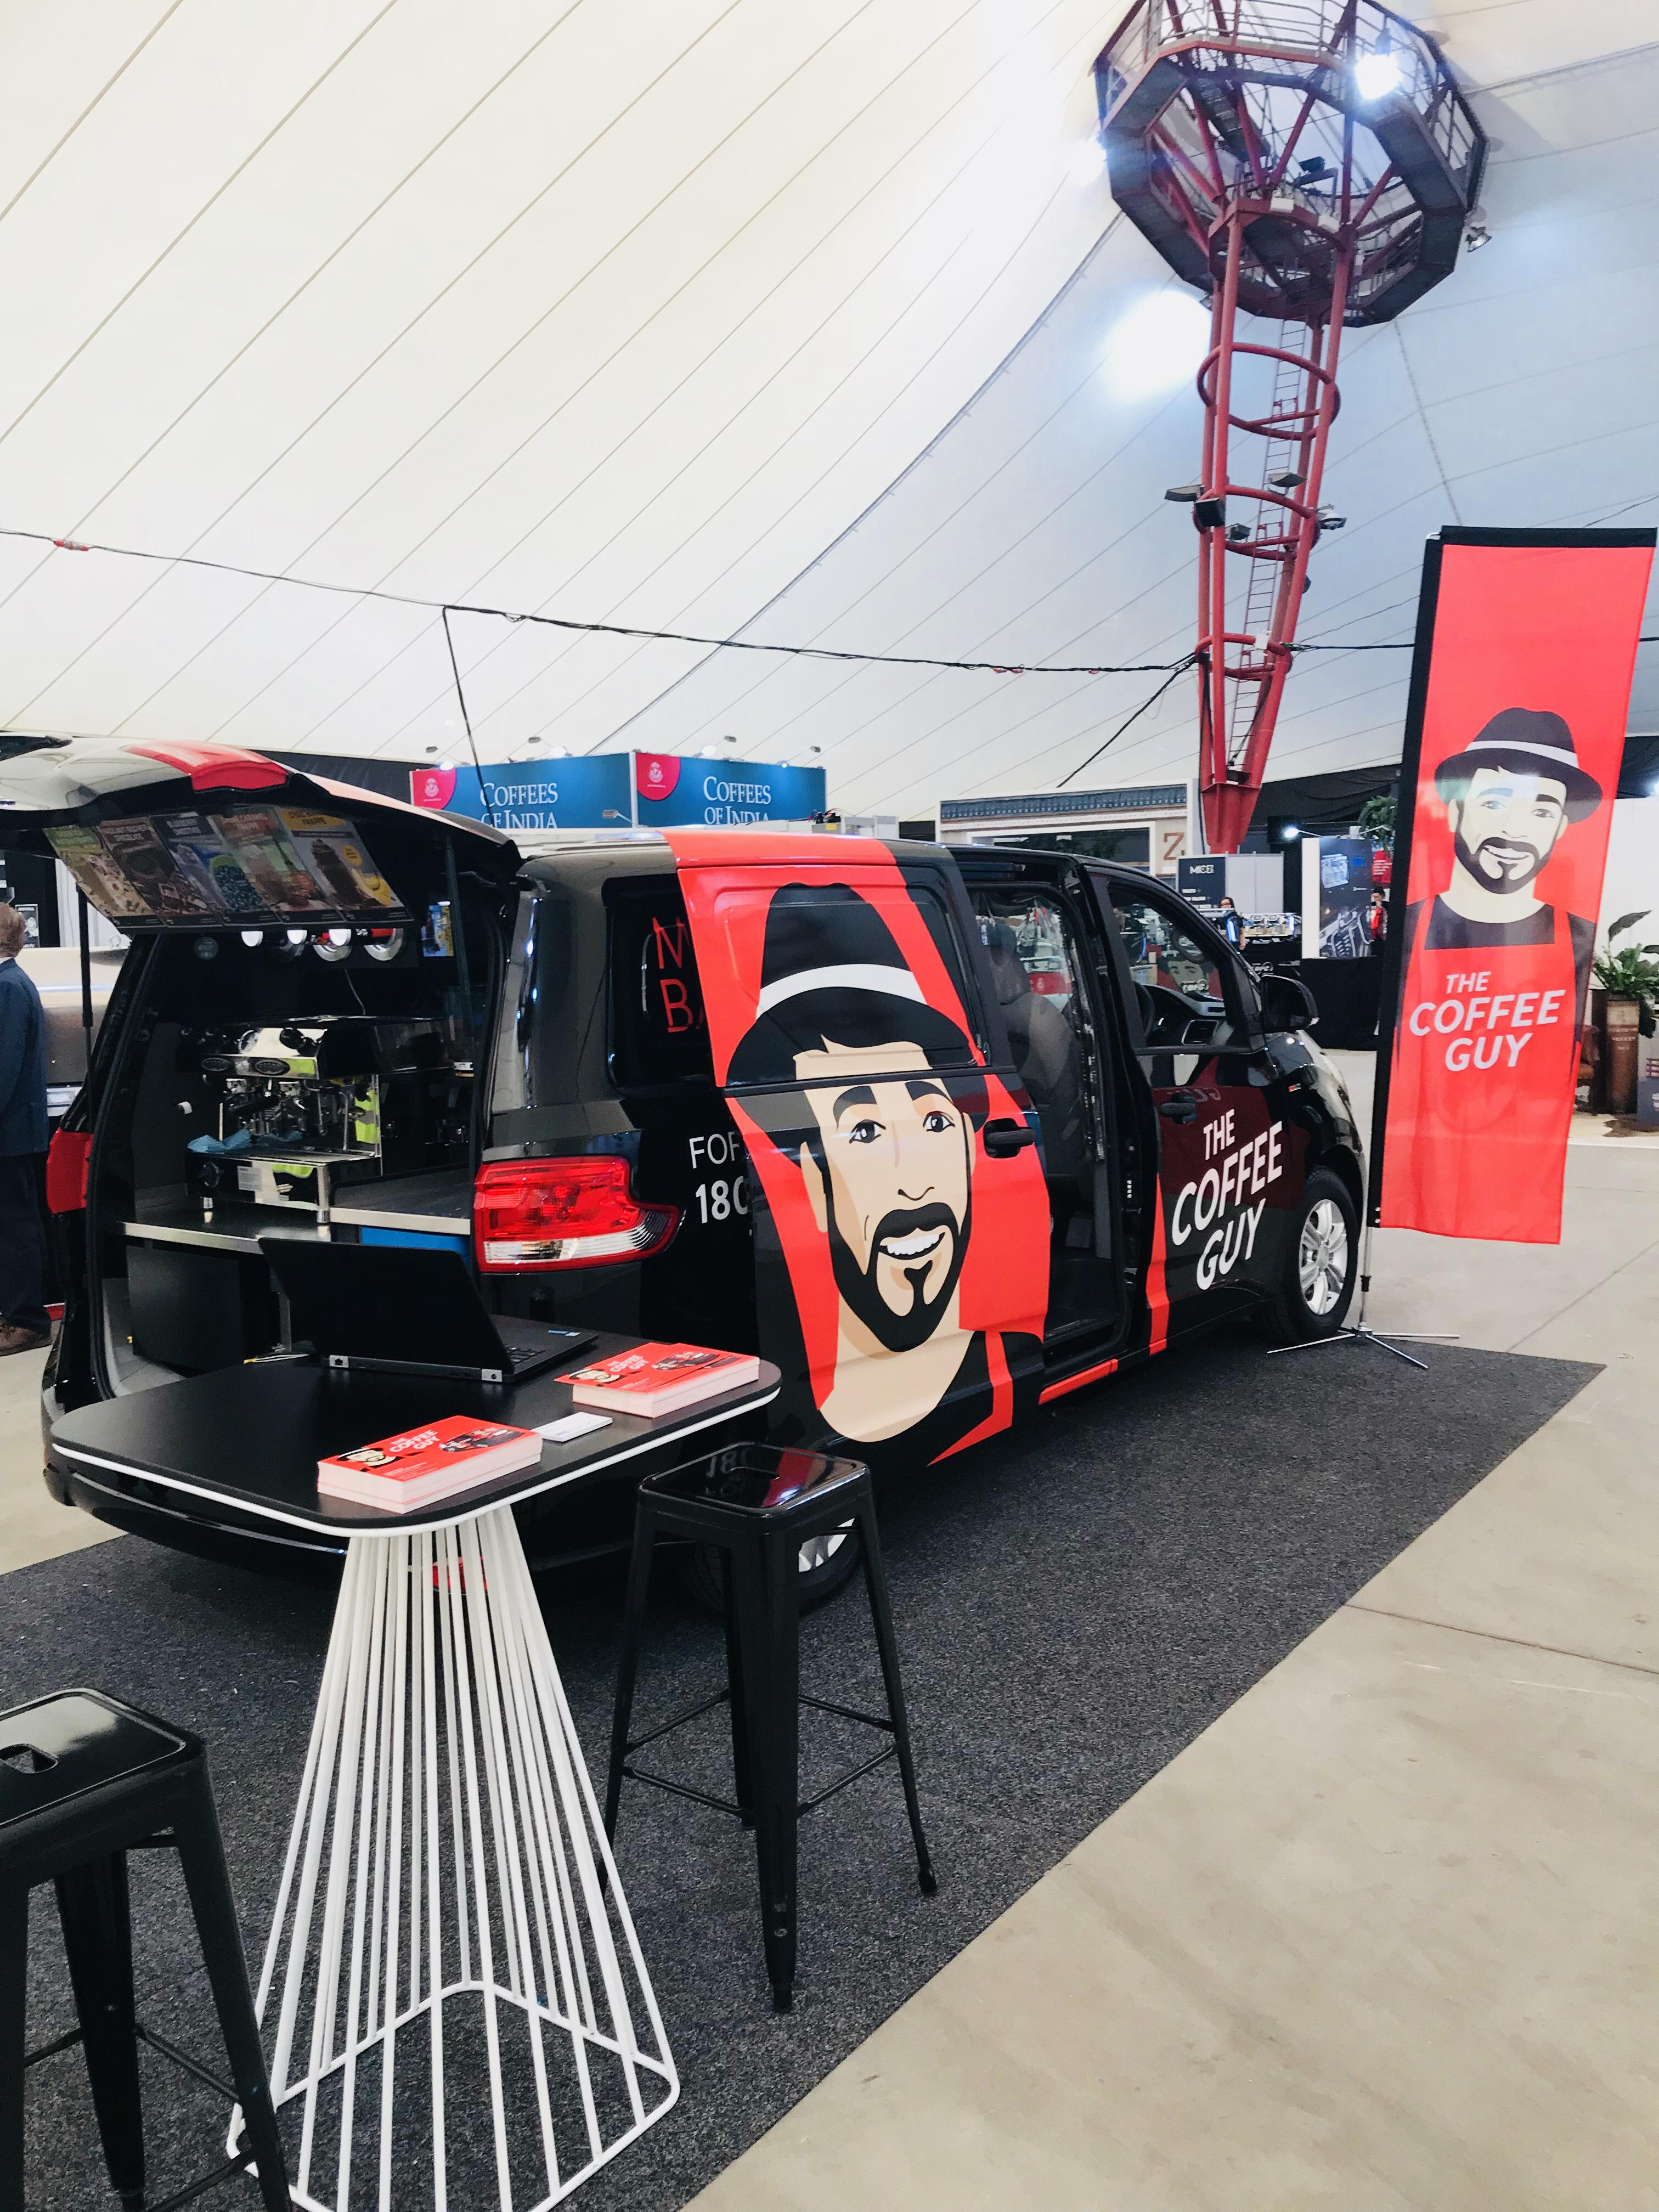 Be That Coffee Guy! NEW Coffee Guy mobile franchises available in Western Sydney